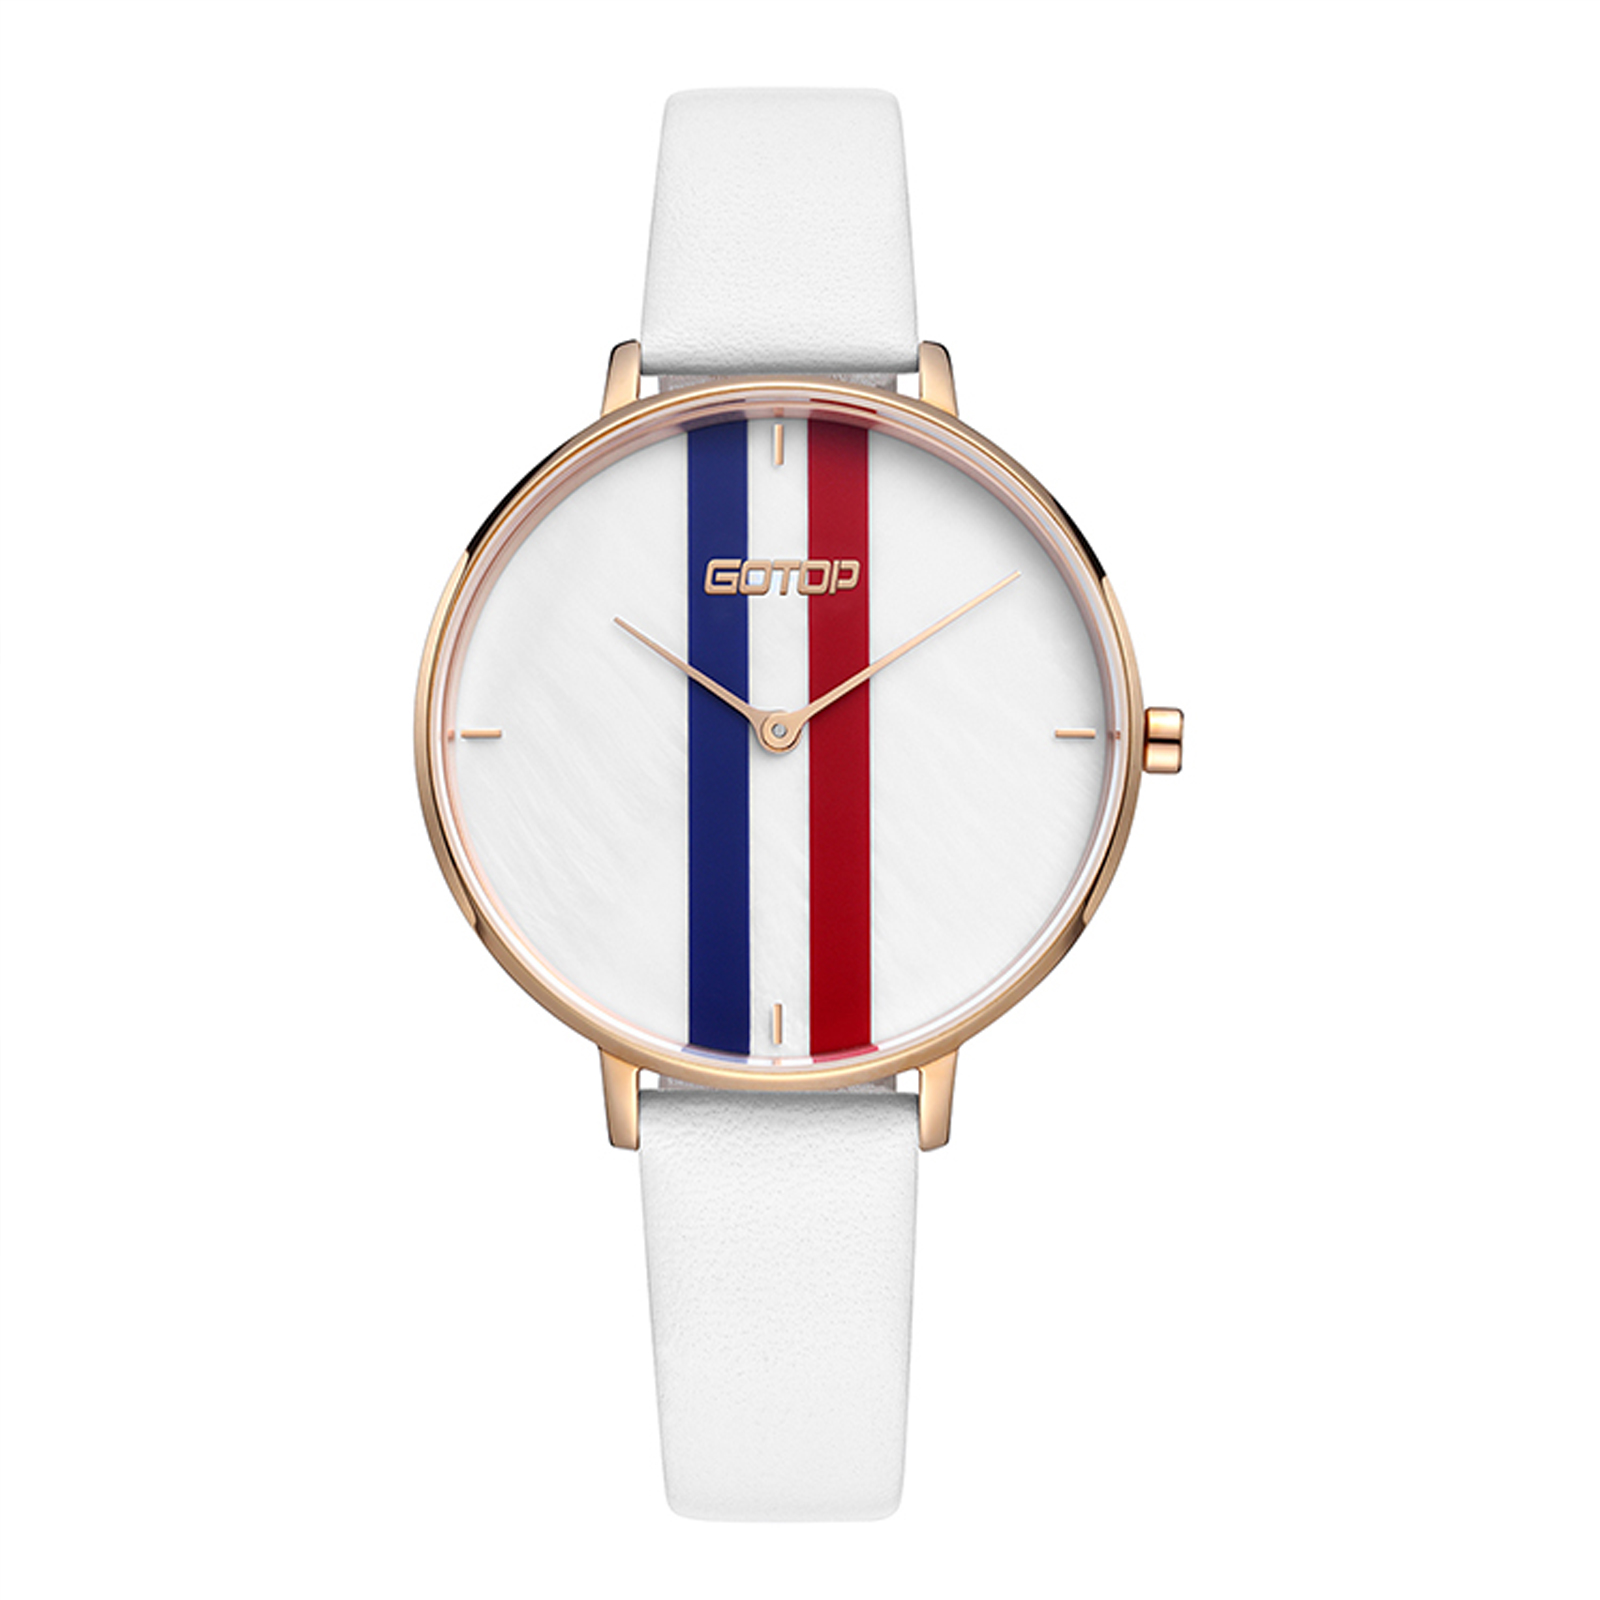 White Women's Watch With Leather Strap And Stripe Detail